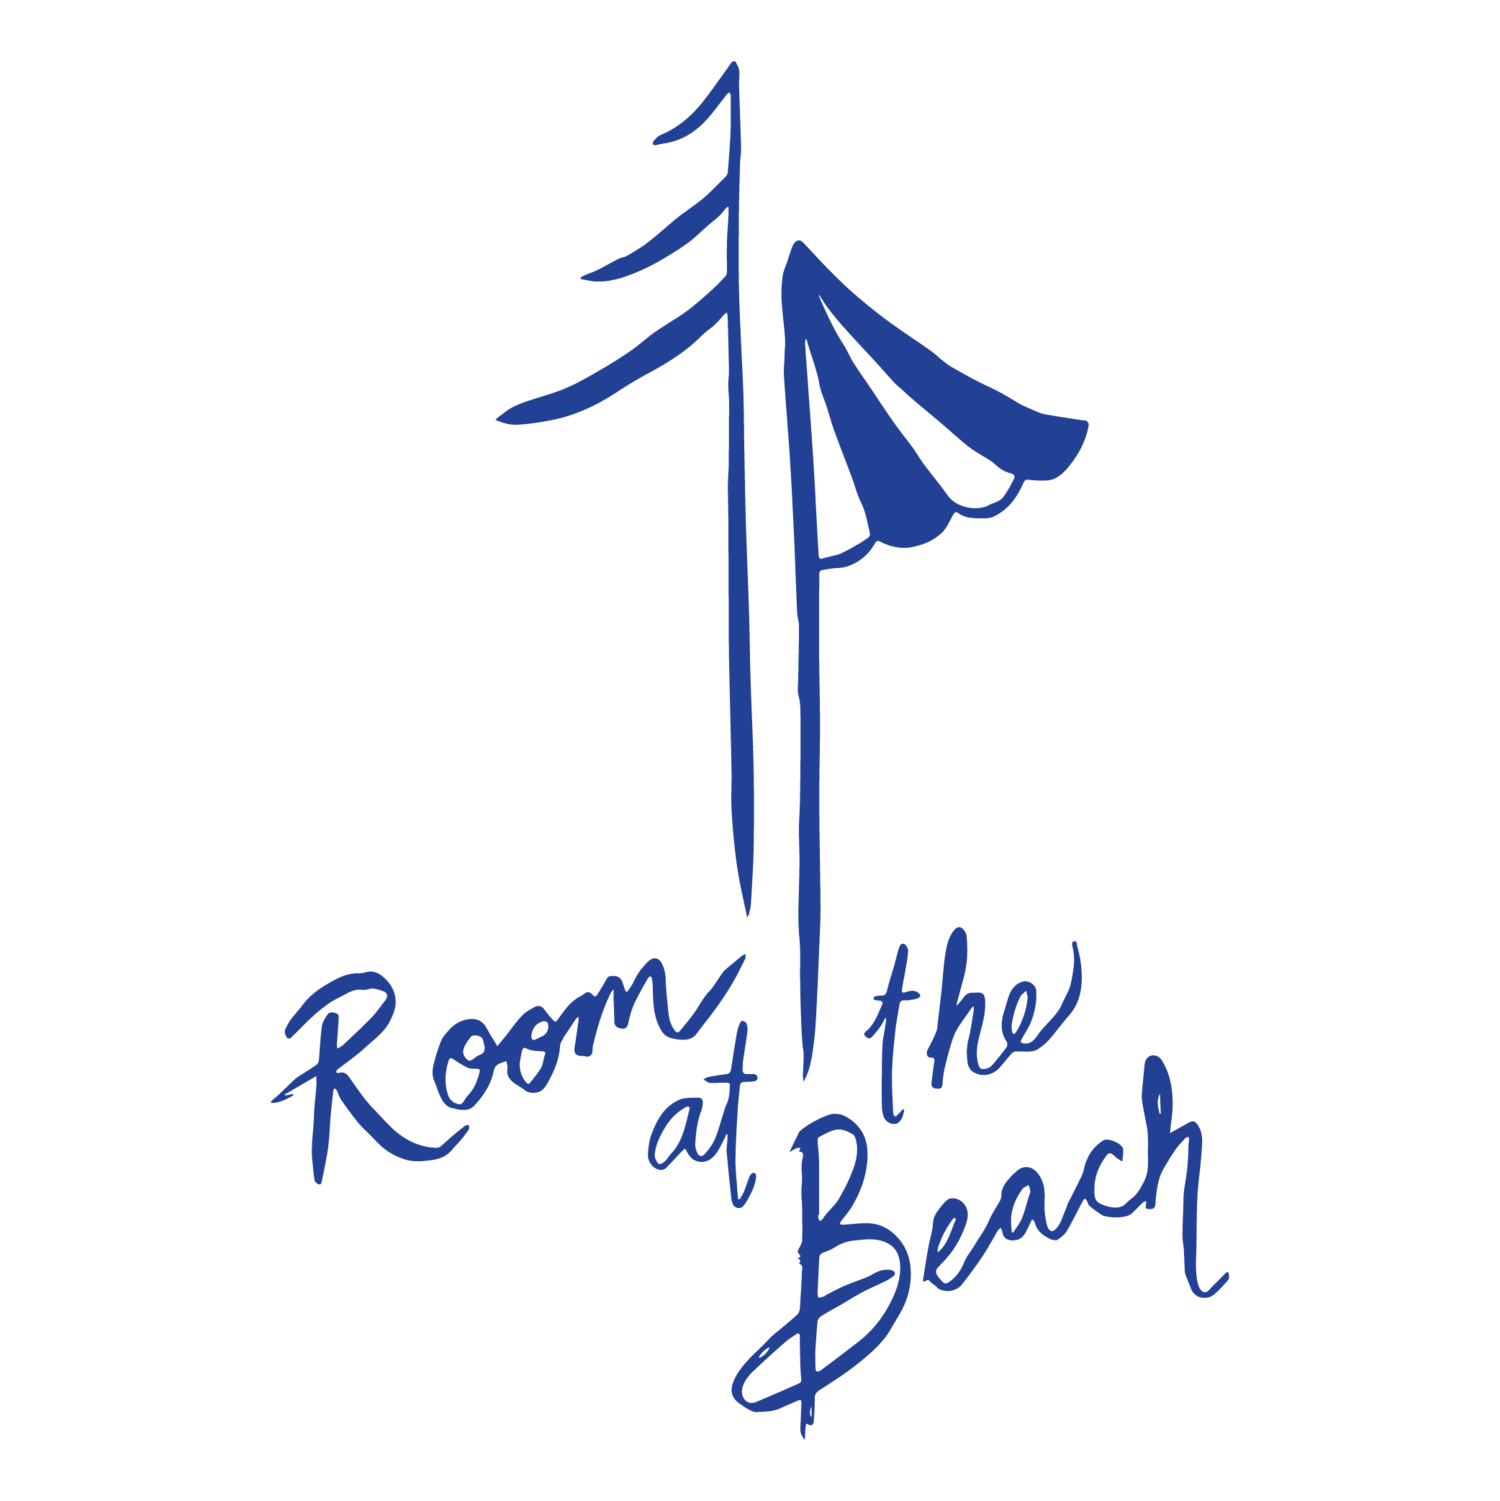 A Room at the Beach